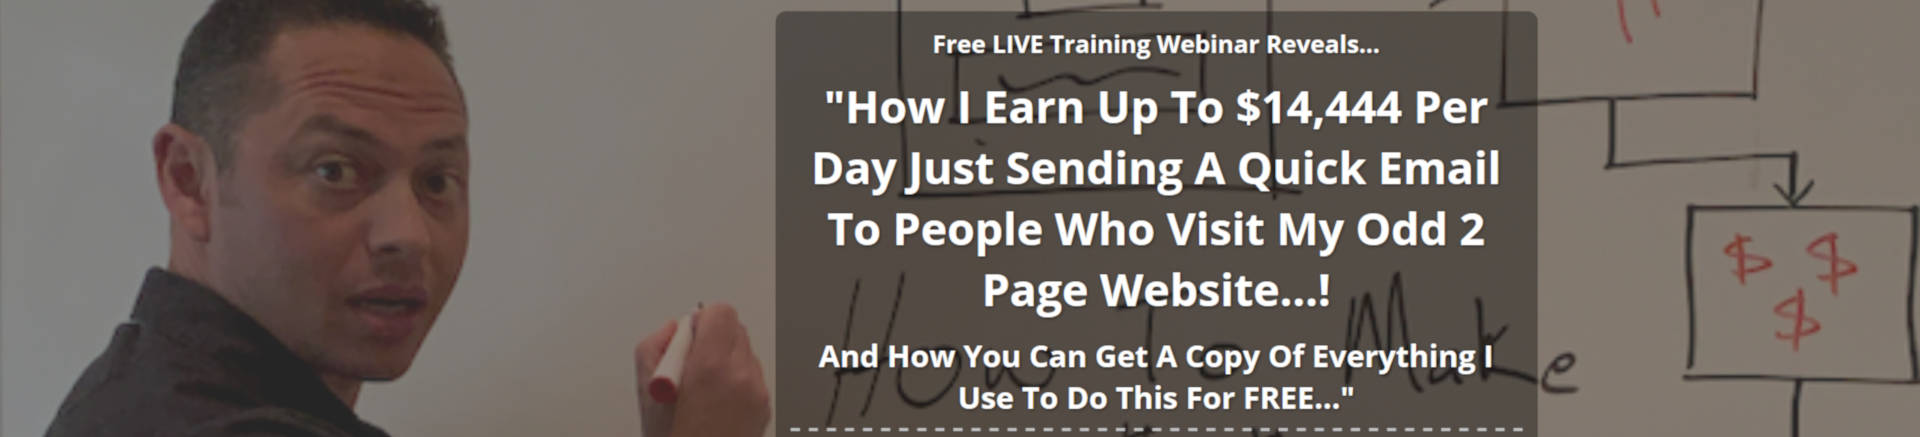 Cheap  Training Program Amazon Refurbished